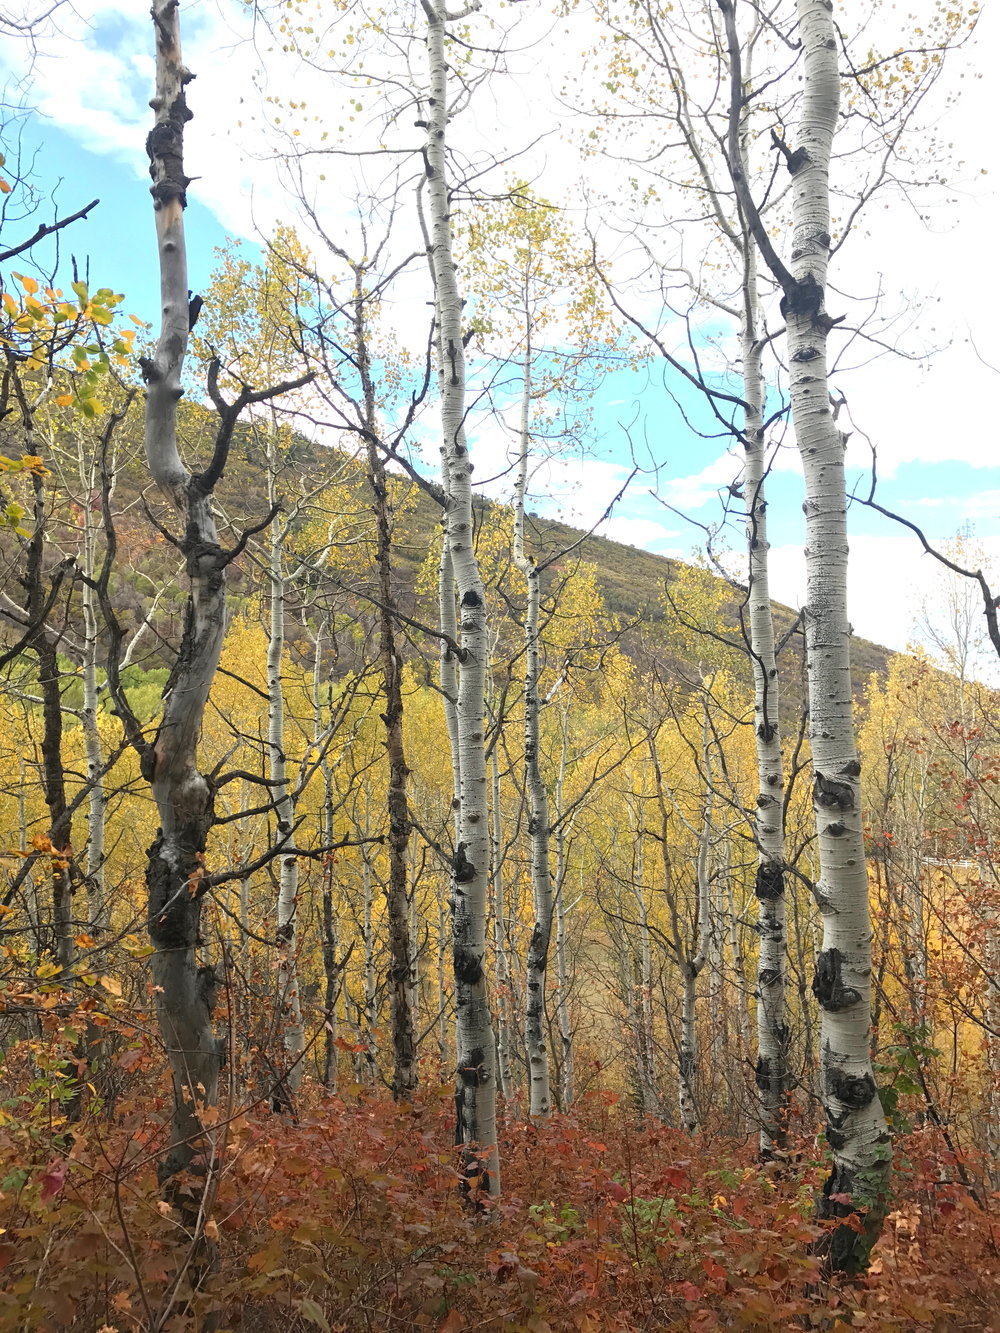 Park City in October